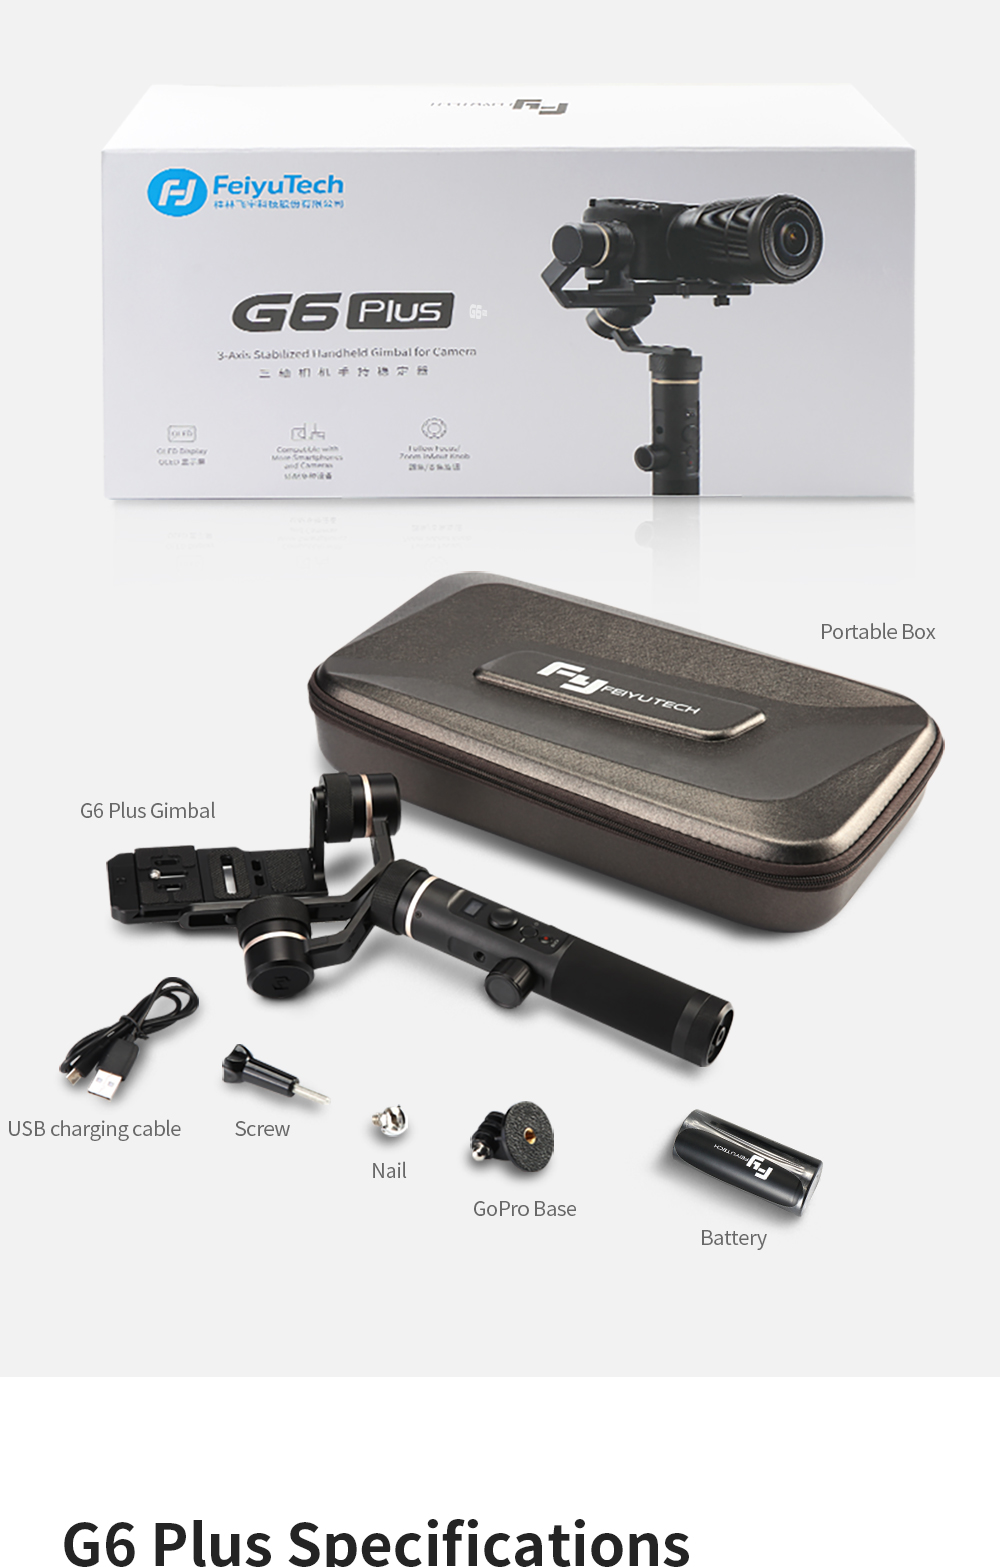 FeiyuTech G6 Plus 3-Axis Handheld Gimbal Stabilizer for Mirrorless Camera Pocket Camera GoPro Smartphone Payload 800g Feiyu G6P 15